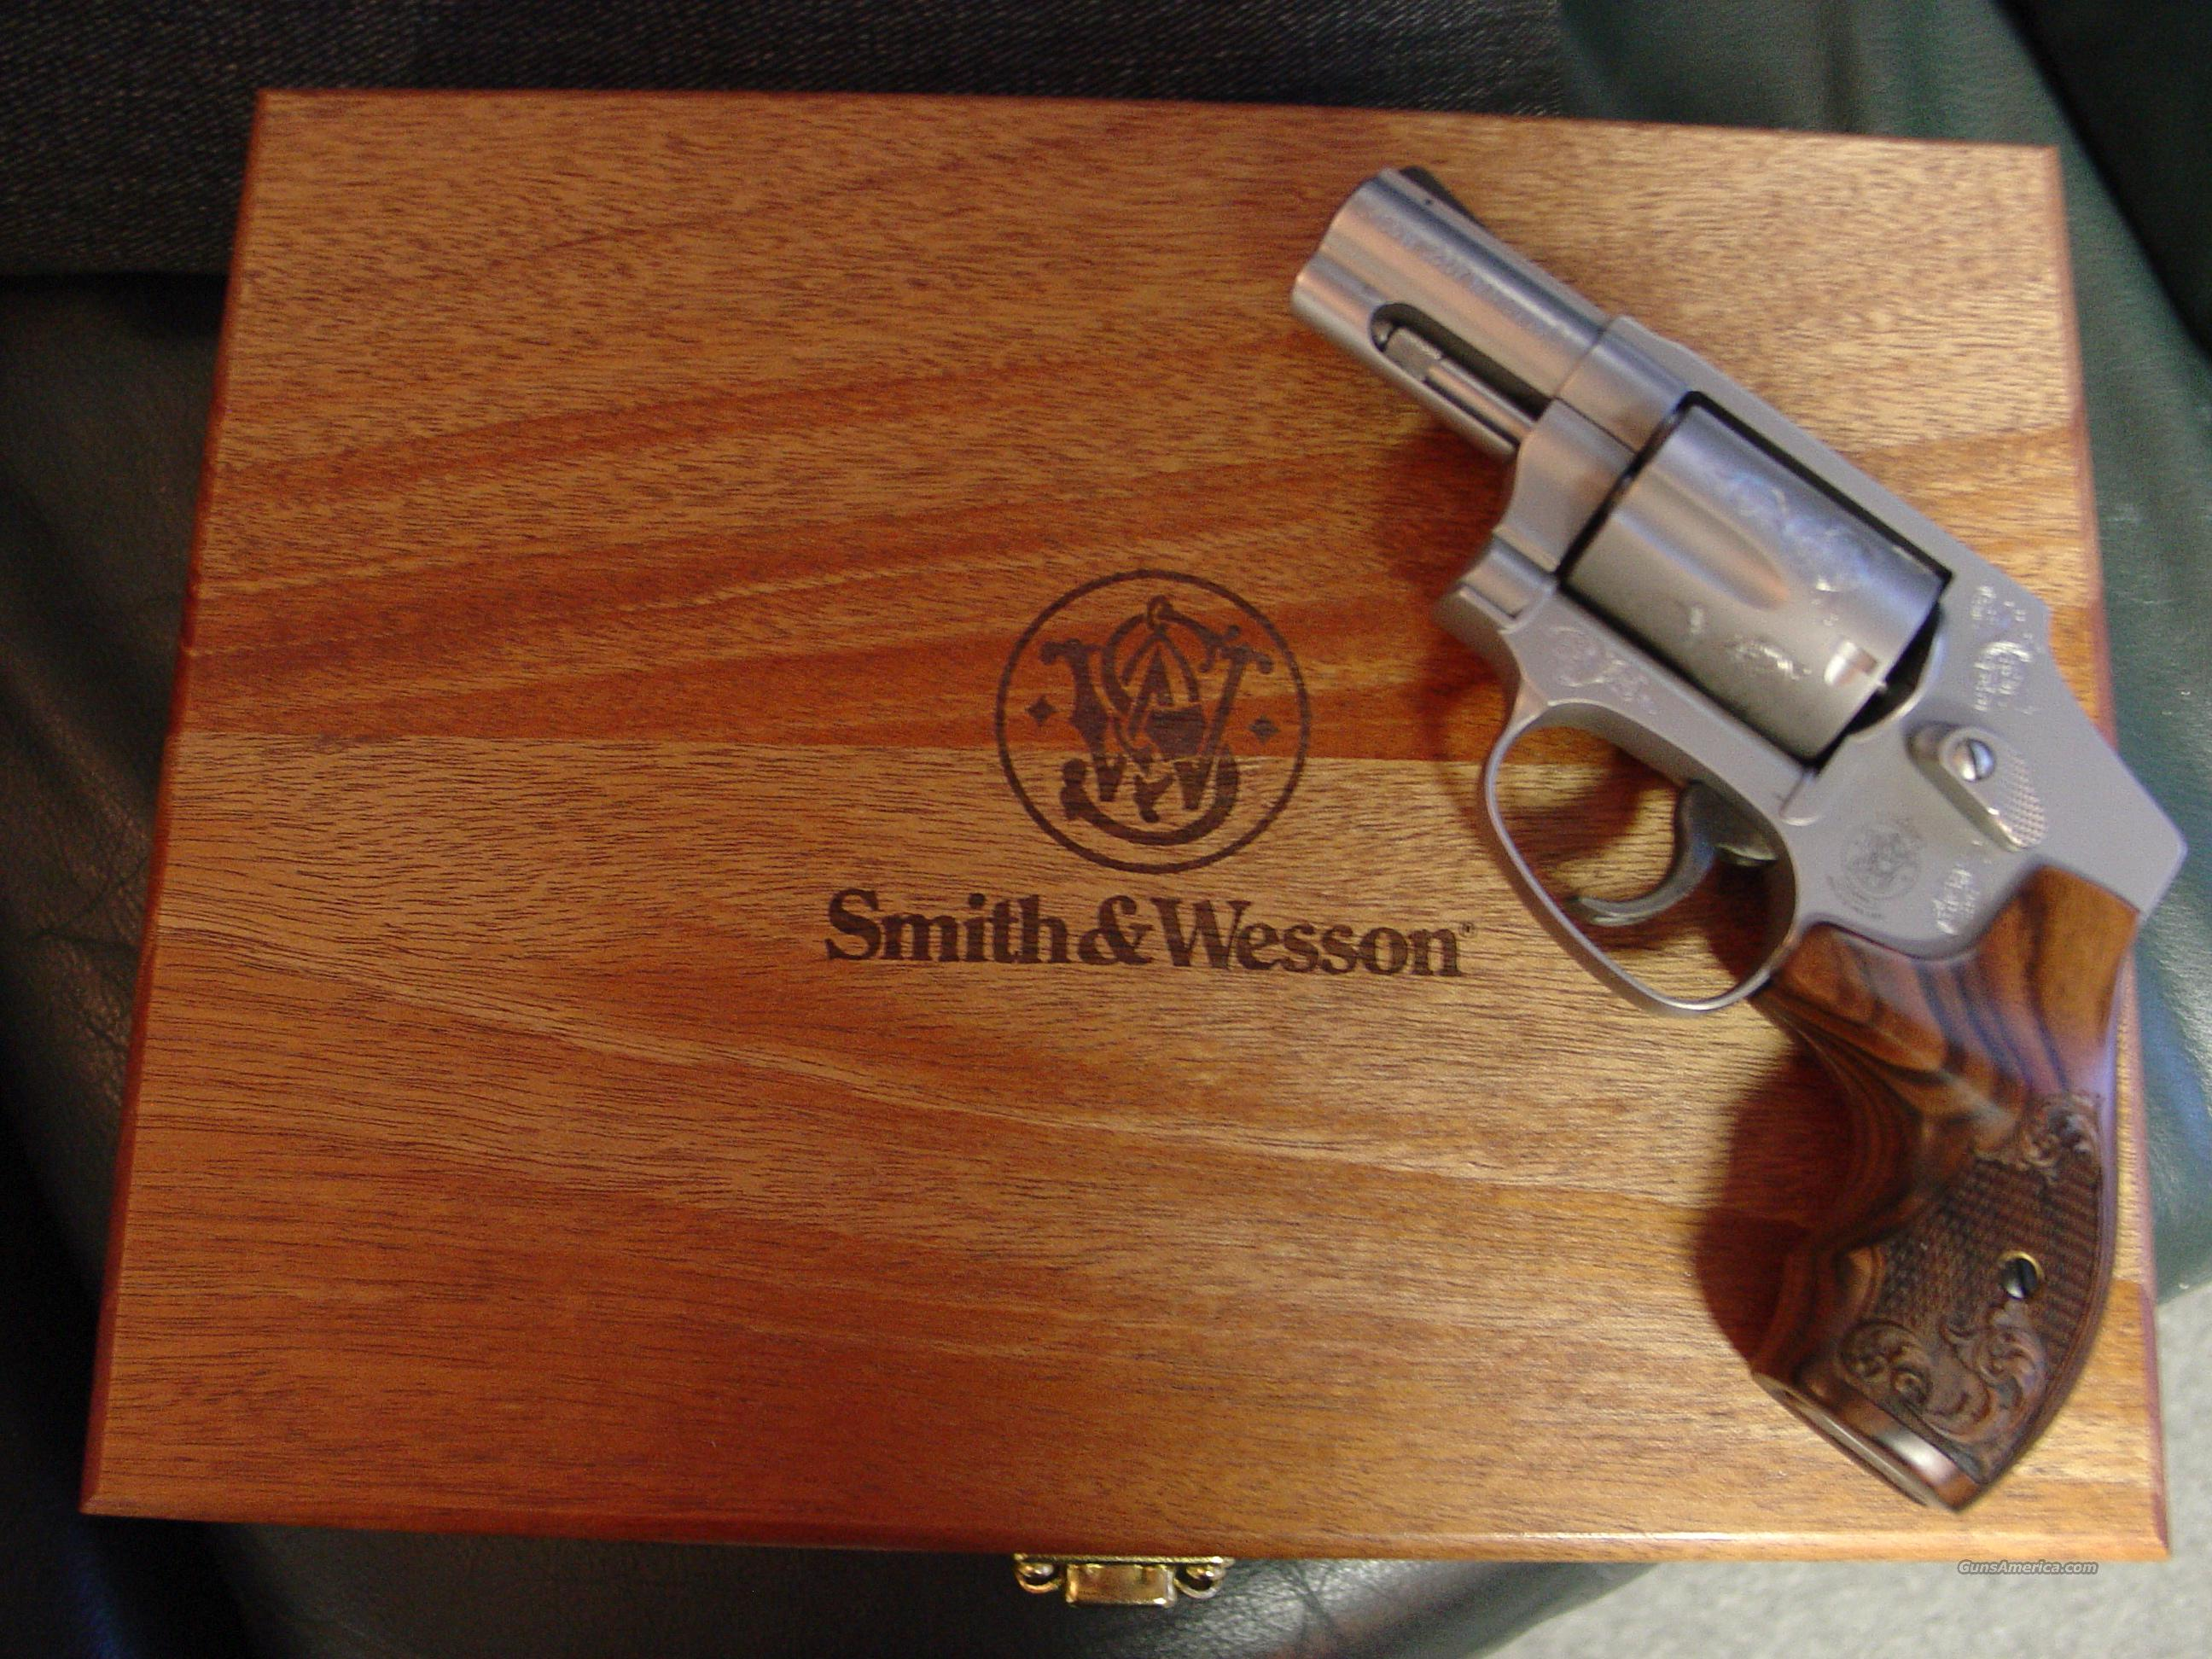 """Smith & Wesson 640-1,357 Magnum,2.125"""" barrel,factory engraved,satin stainless,double action only,Rosewood finger groove grips,locking wood Presentation case,all boxes,manual,lock etc.great looking pocket revolver  Guns > Pistols > Smith & Wesson Revolvers > Pocket Pistols"""